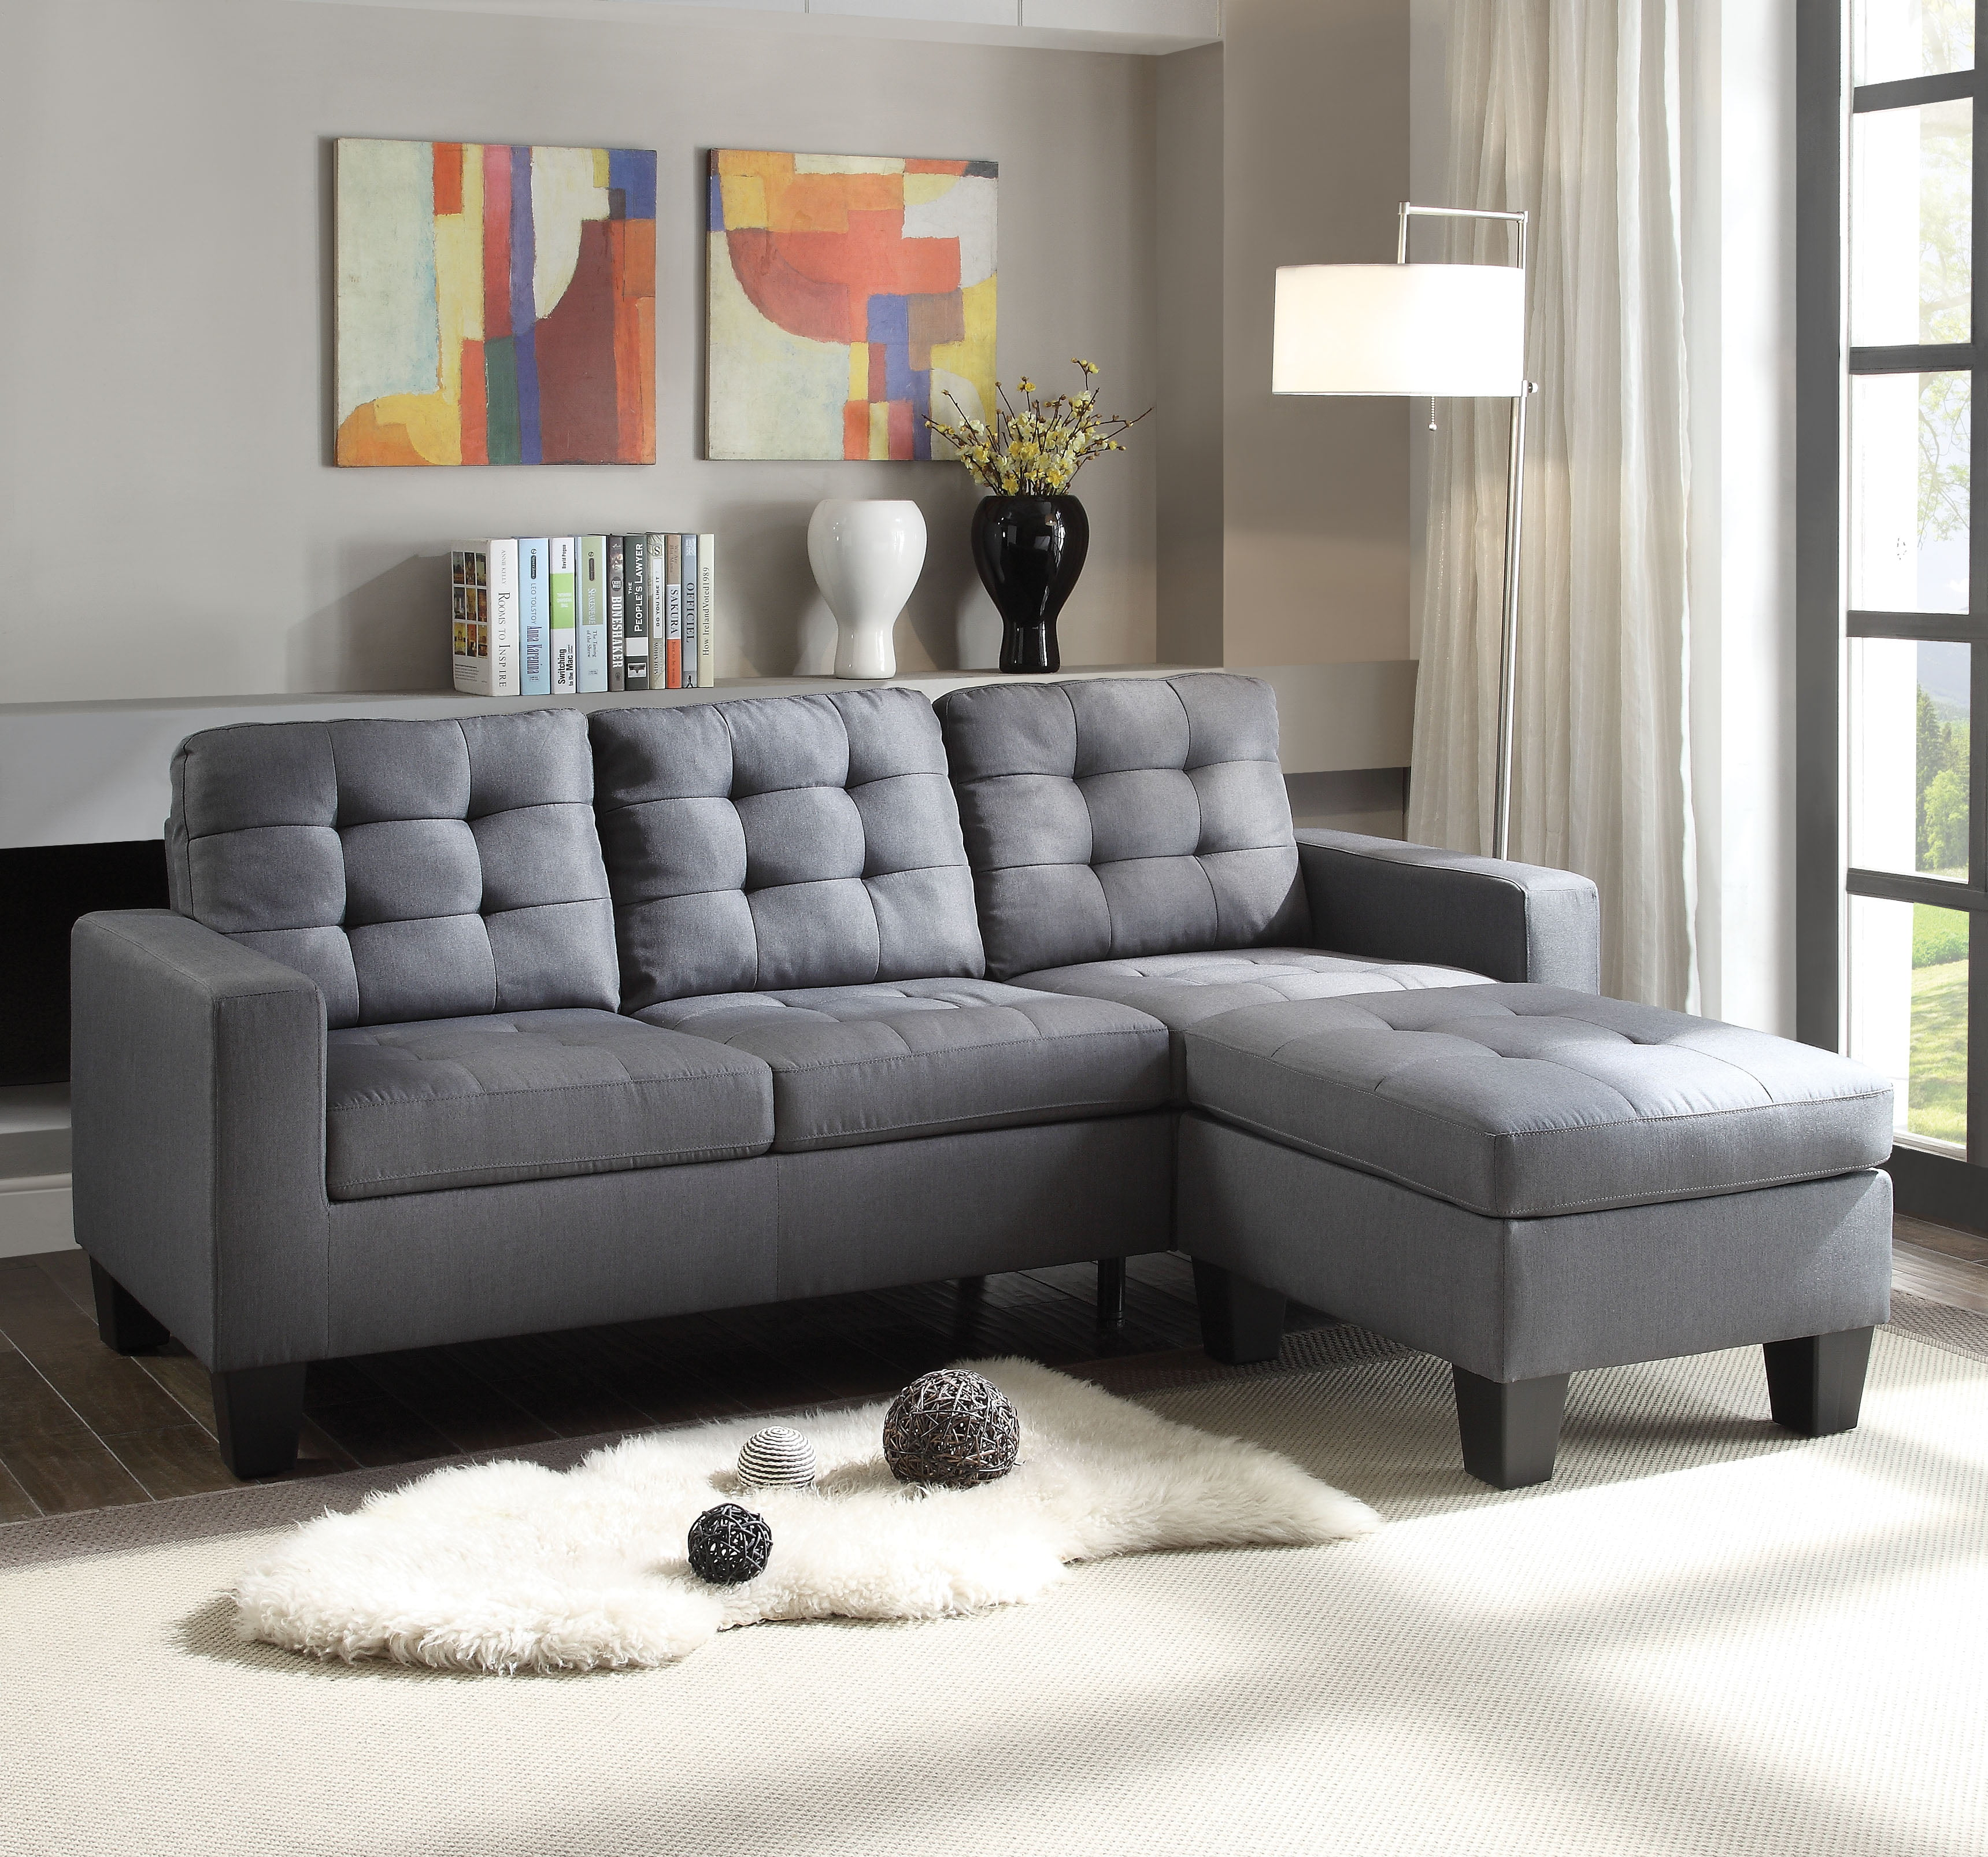 ACME Earsom Tufted Sectional Sofa in Gray Linen Upholstery - Walmart.com